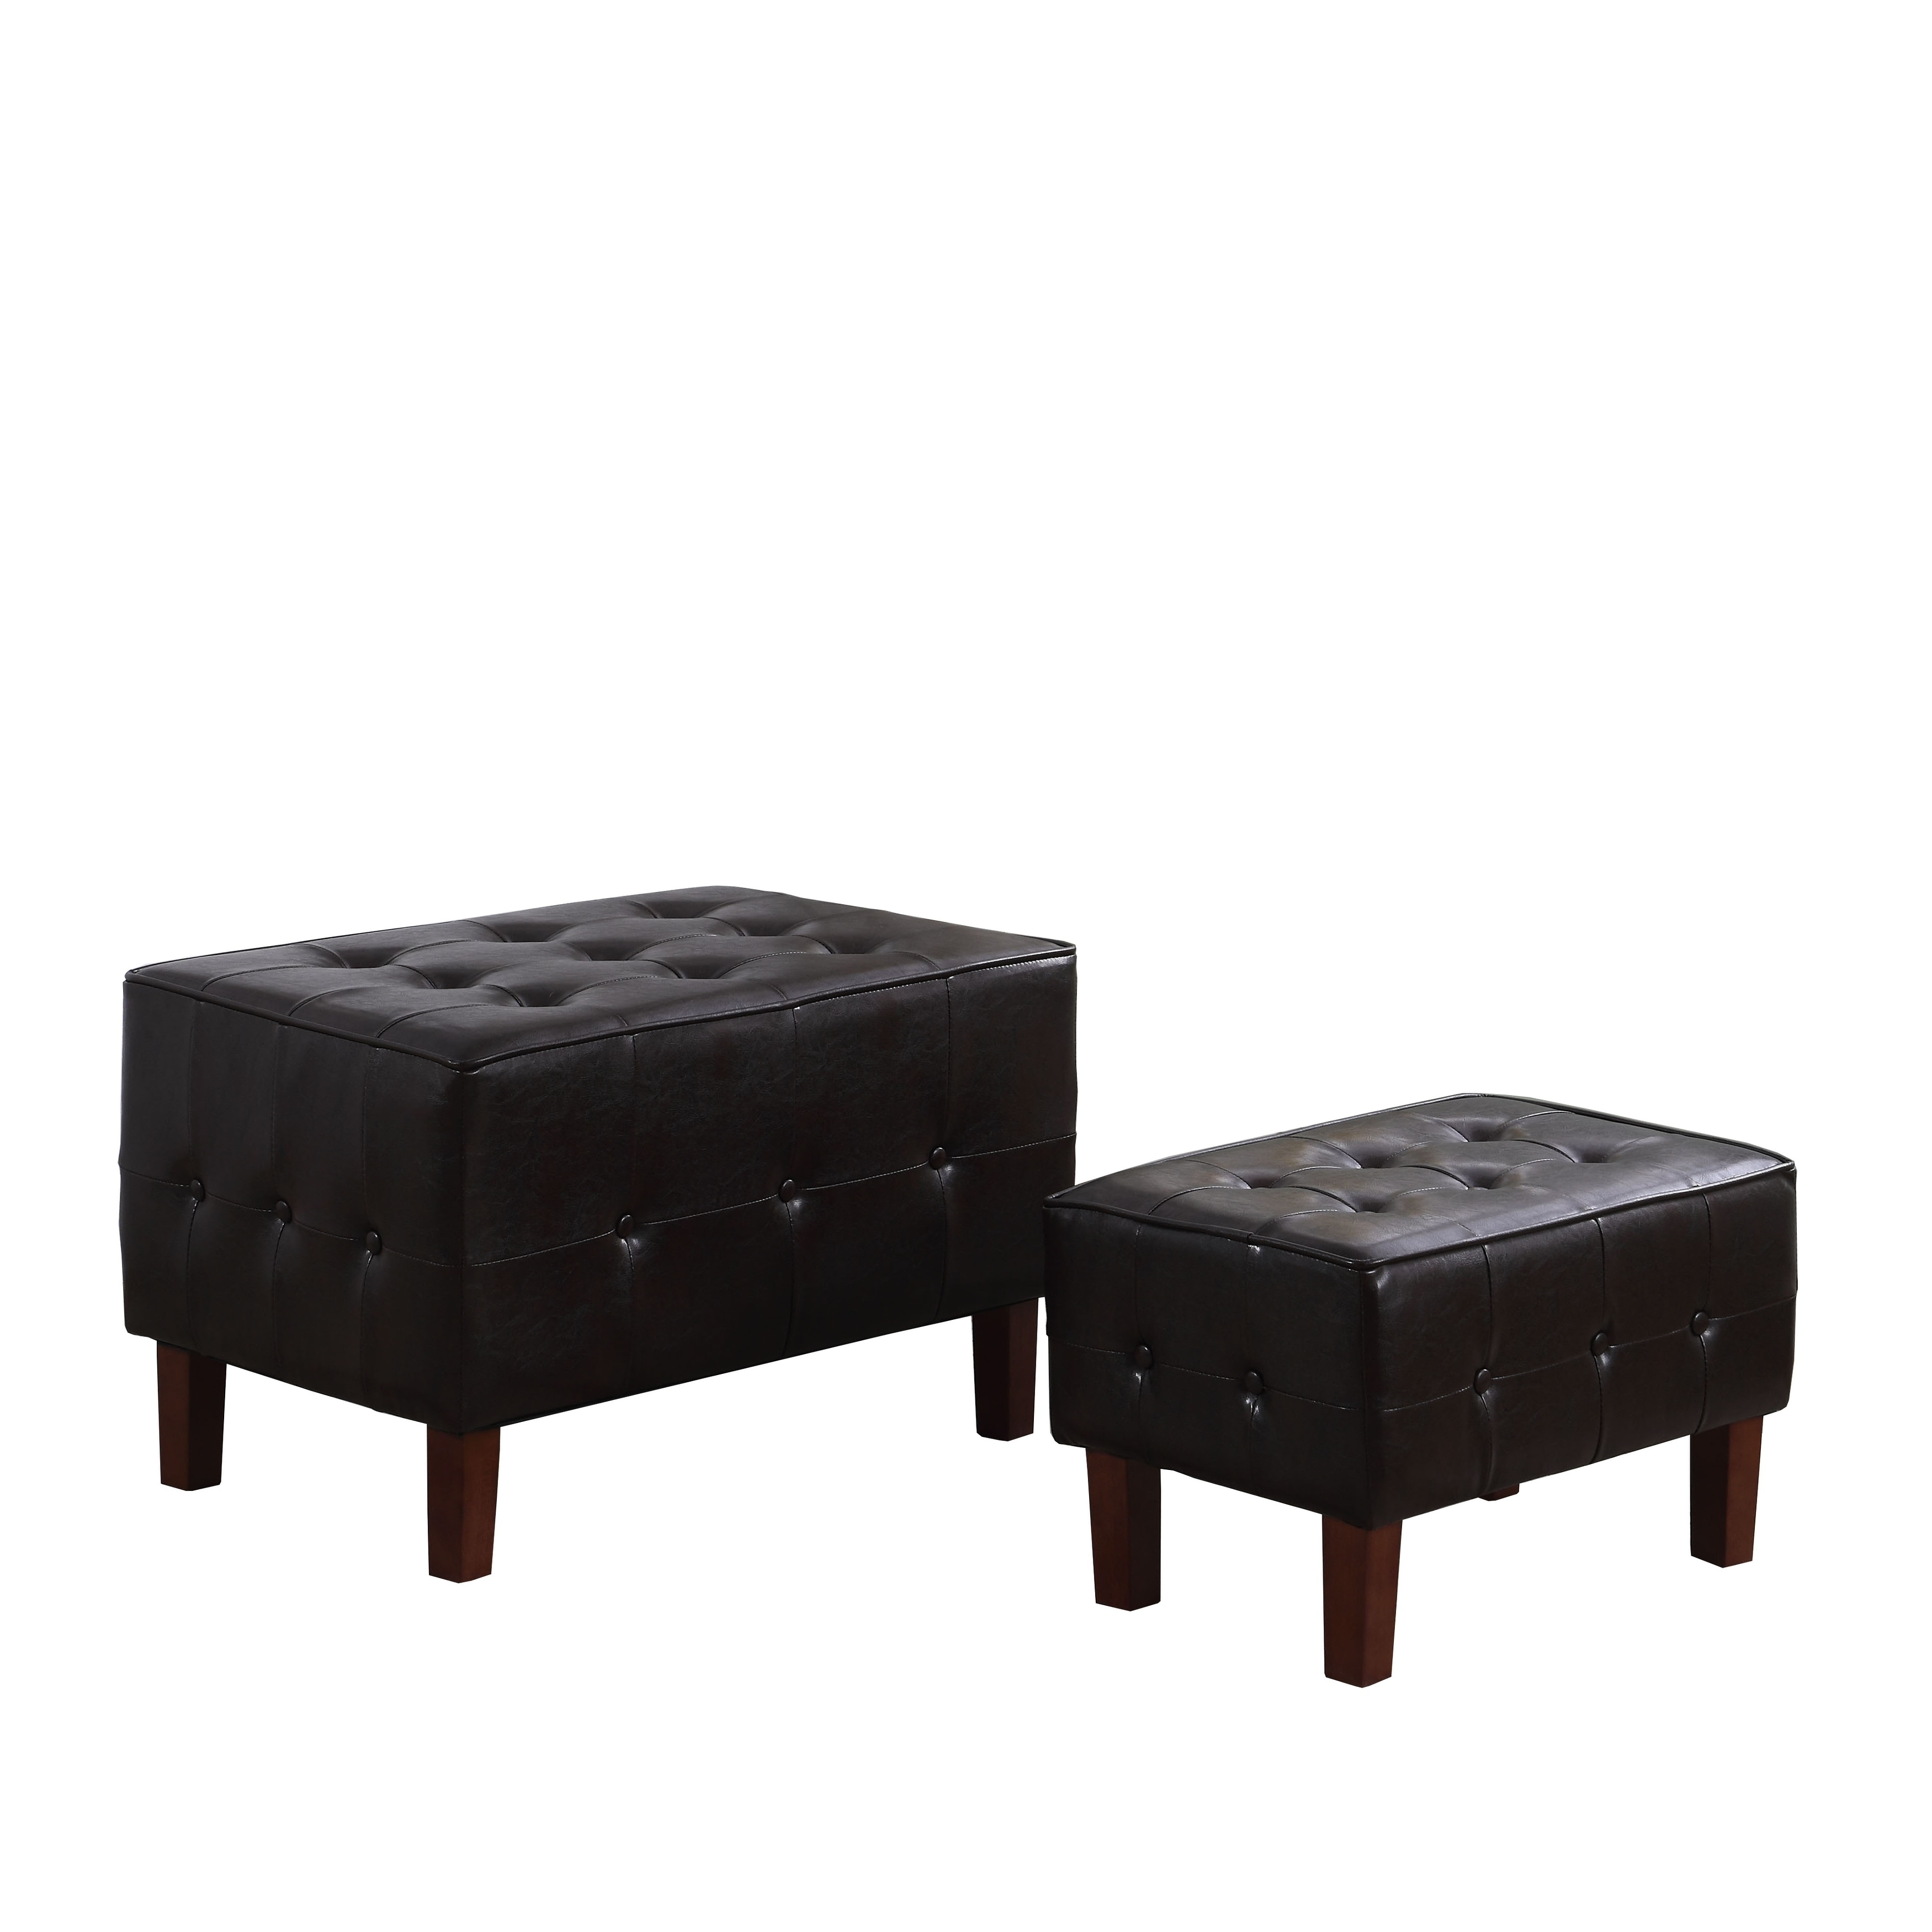 Shop 19 5 In Faux Leather Tufted Piped Seating Bench With Wood Legs On Sale Overstock 21278709